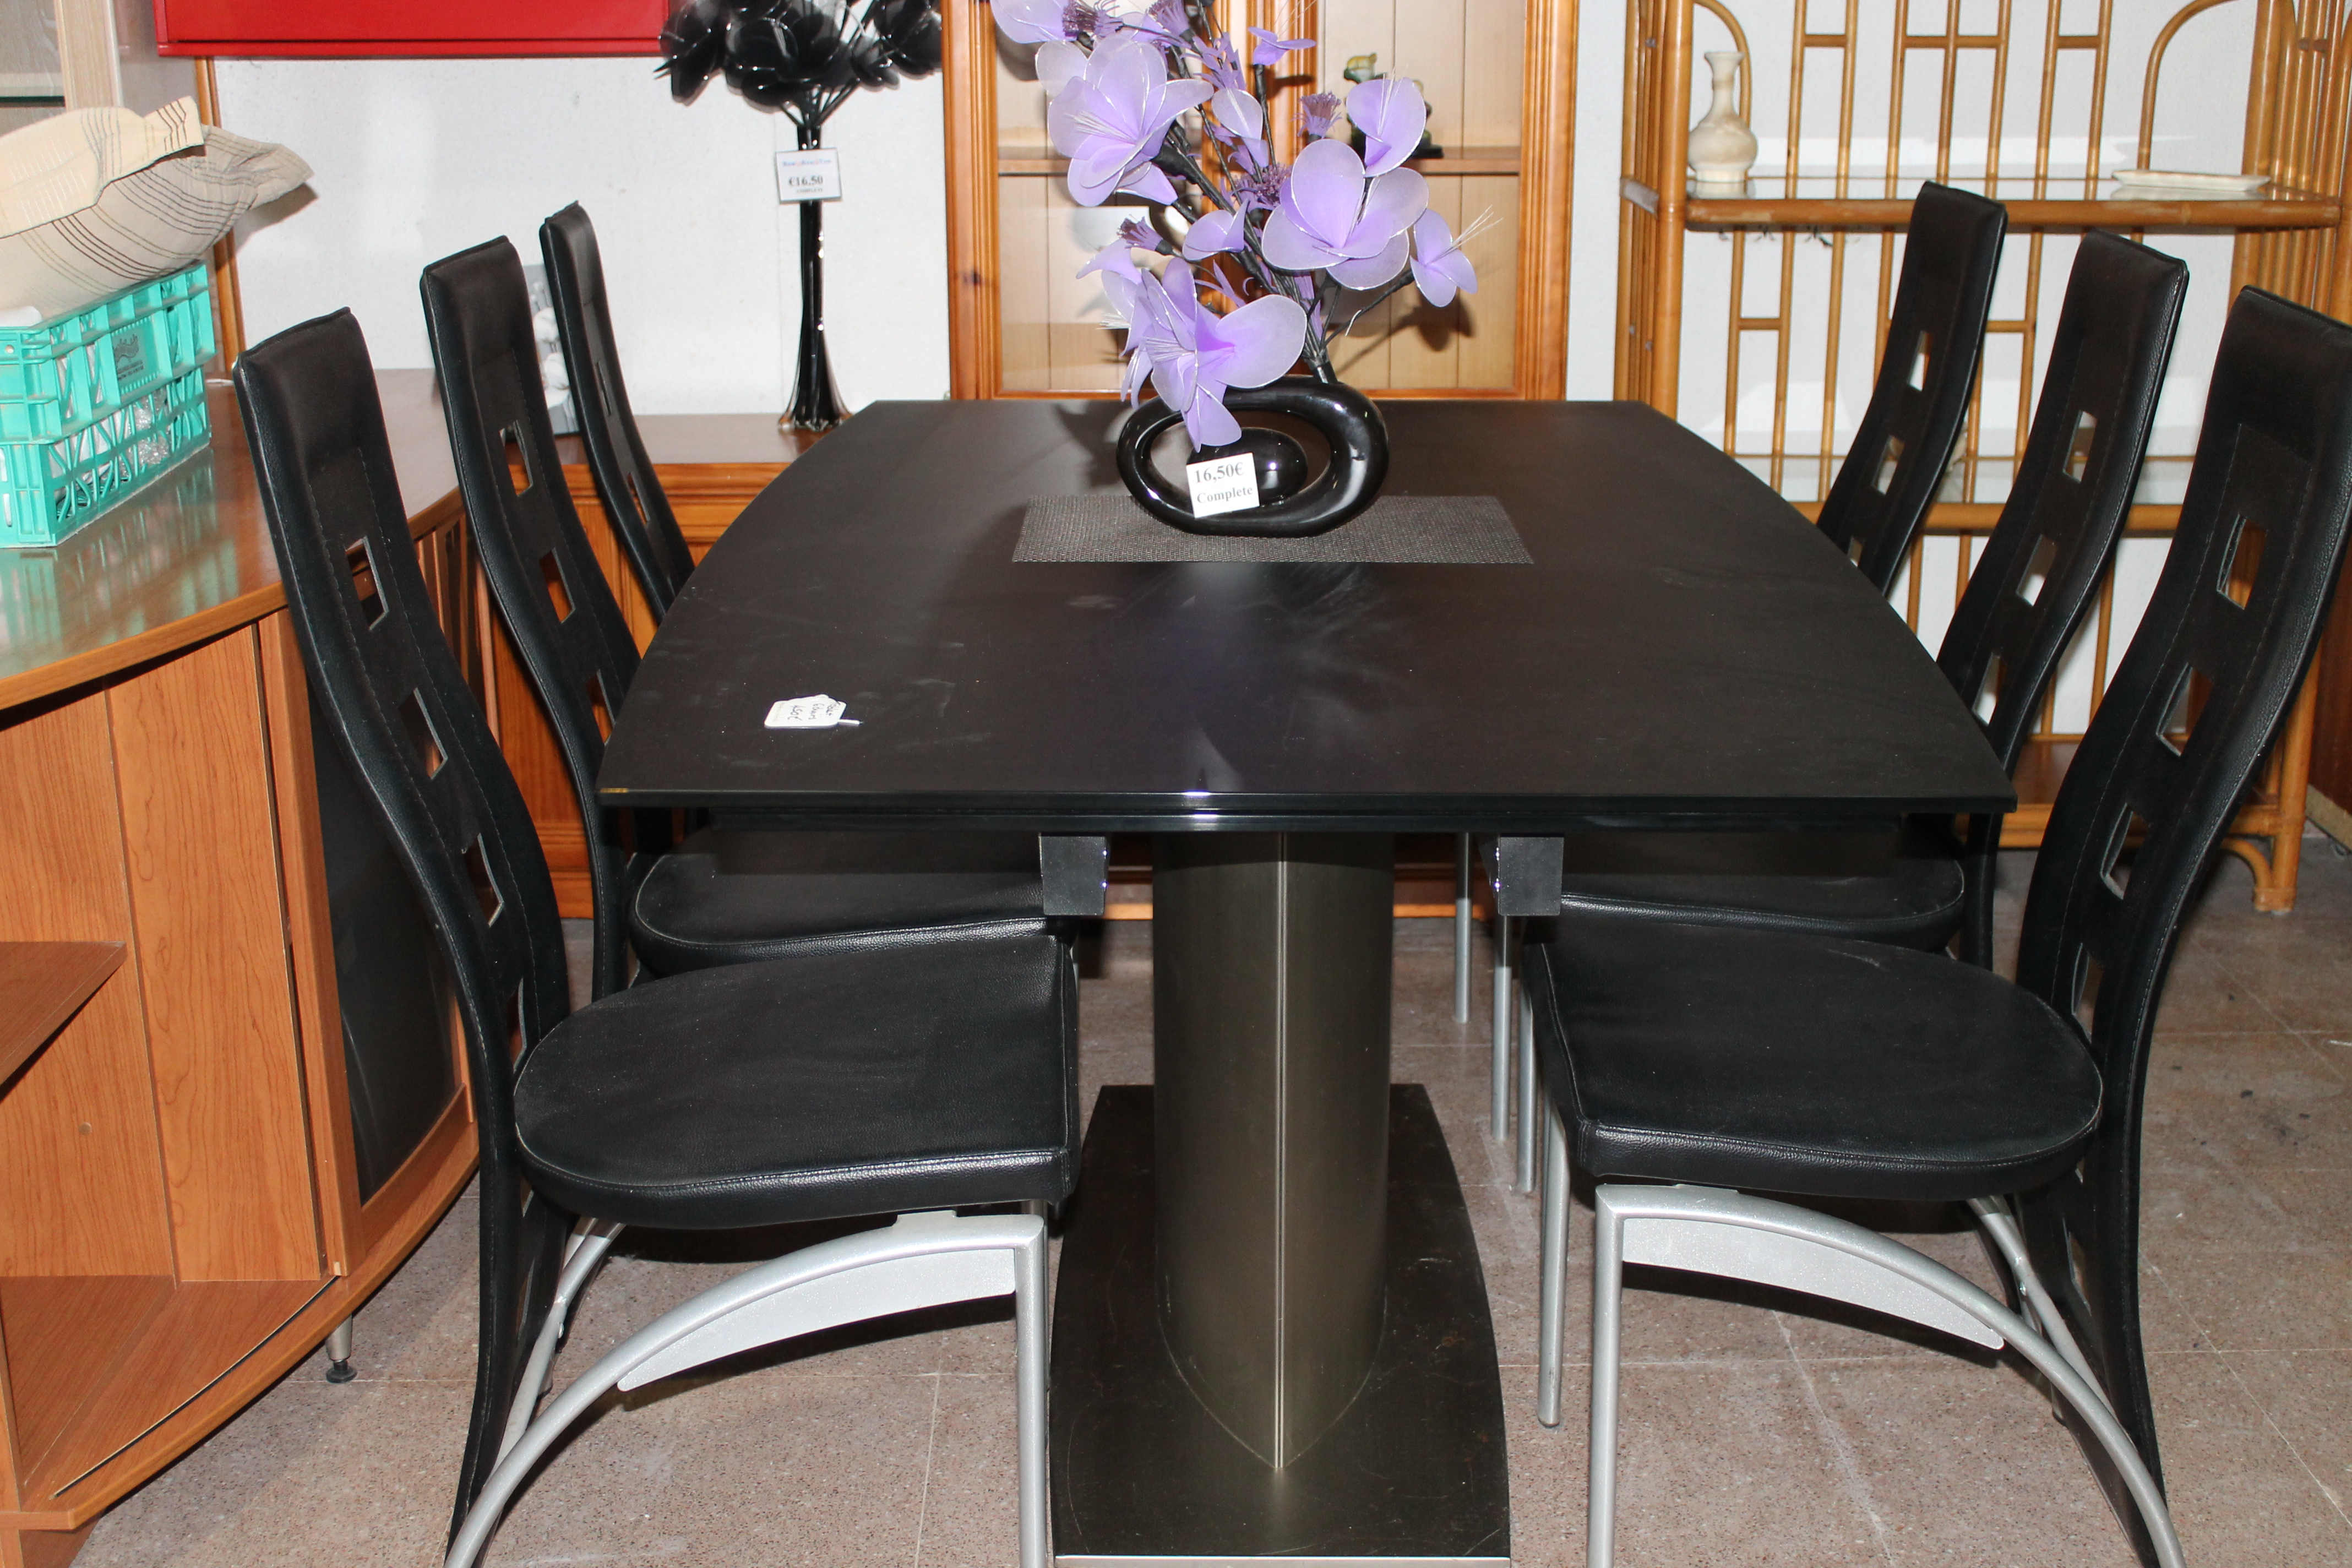 New8You Furniture  Second Hand Tables + Chairs for the Dining